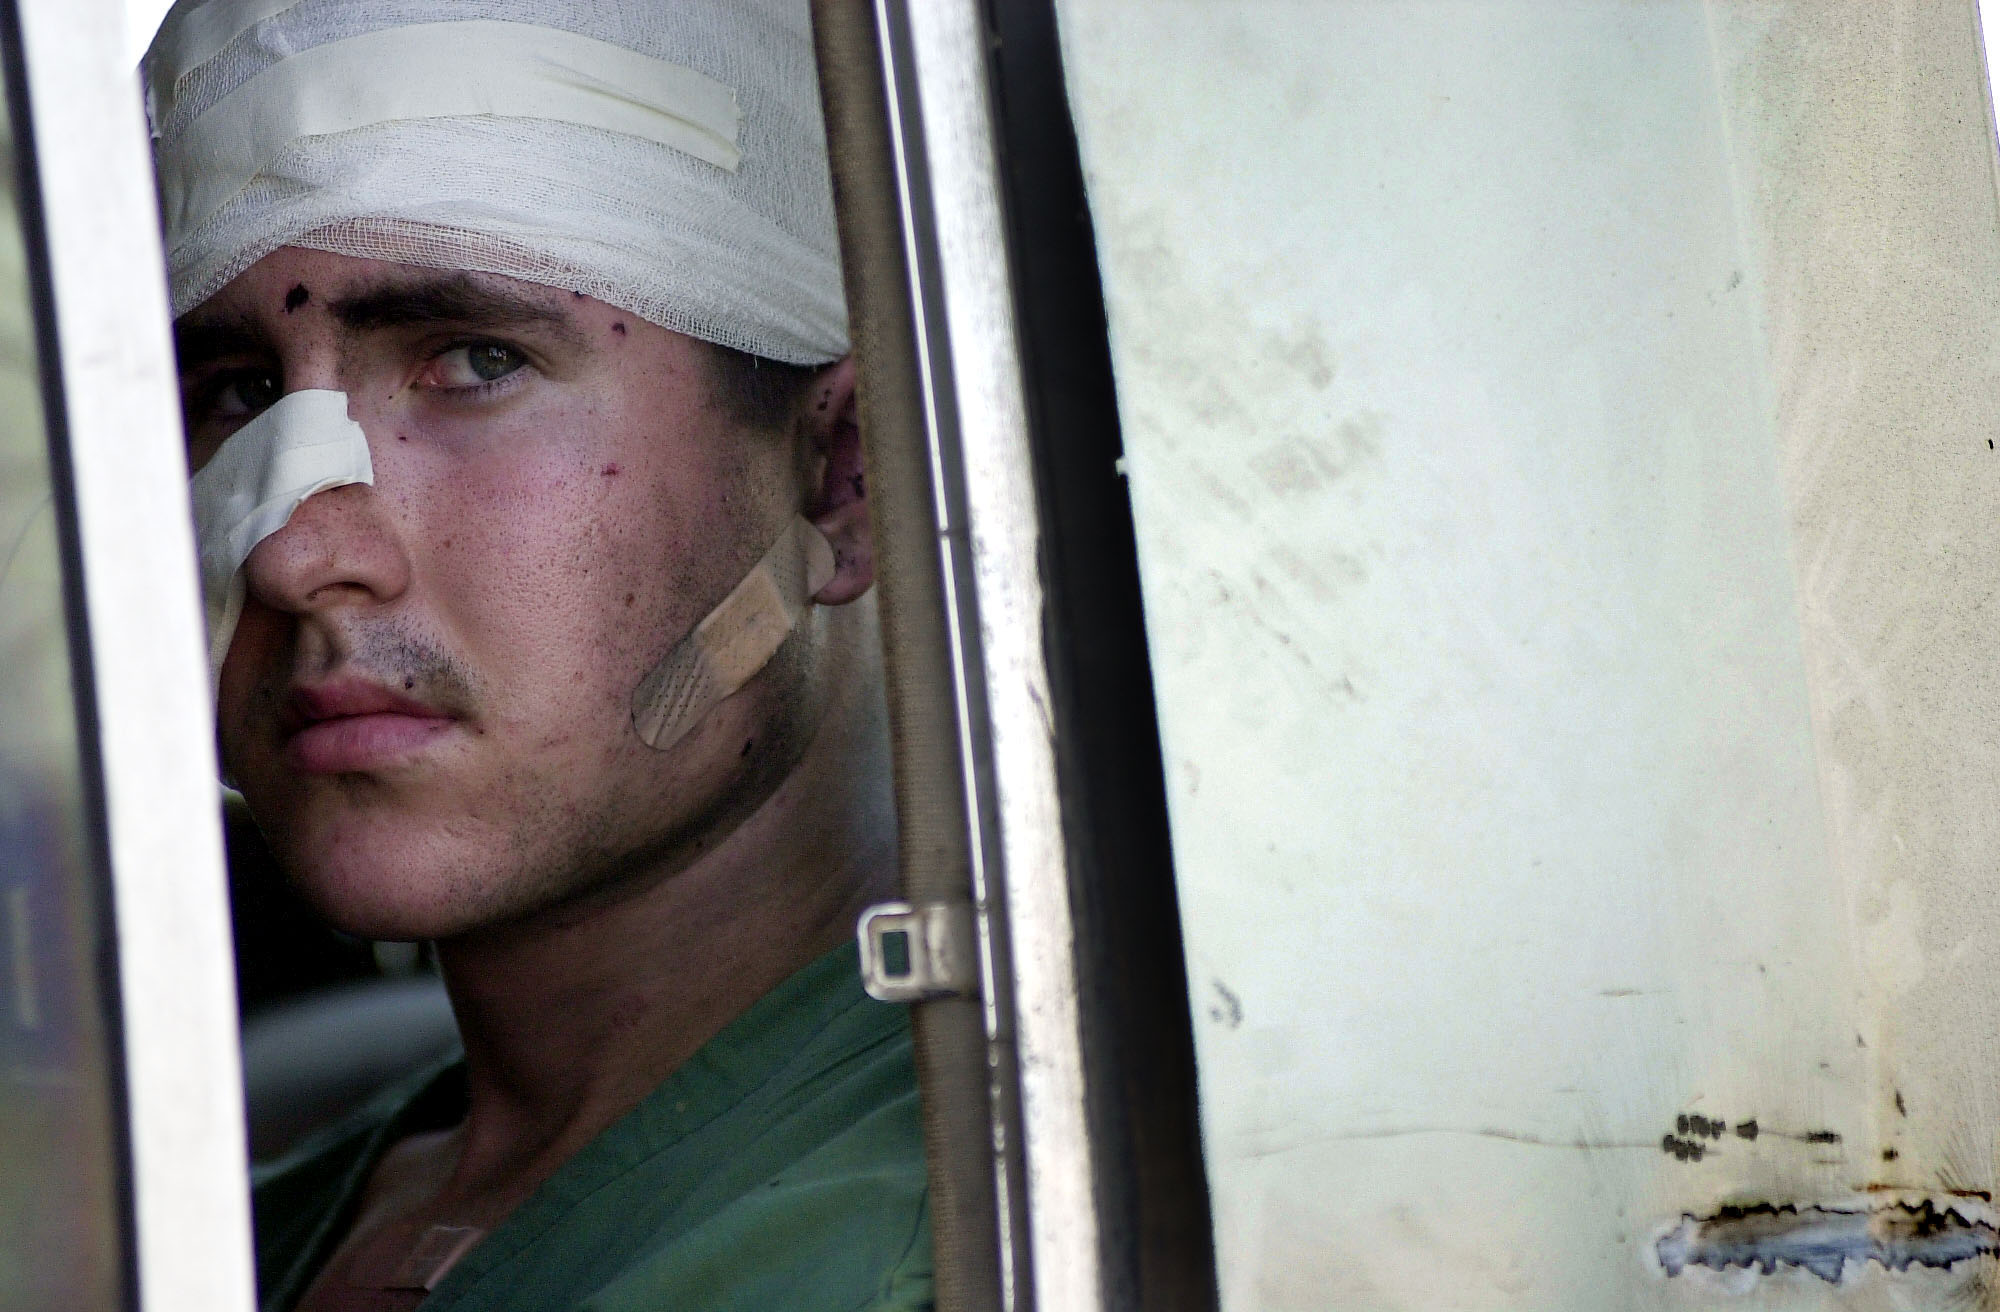 A wounded American sailor from the USS Cole departs a Yemeni hospital October 12, 2000 en route to additional medical treatment in Germany following the terrorist bombing attack on his ship in the port of Aden, Yemen. (Photo by Jim Watson/Navy/)